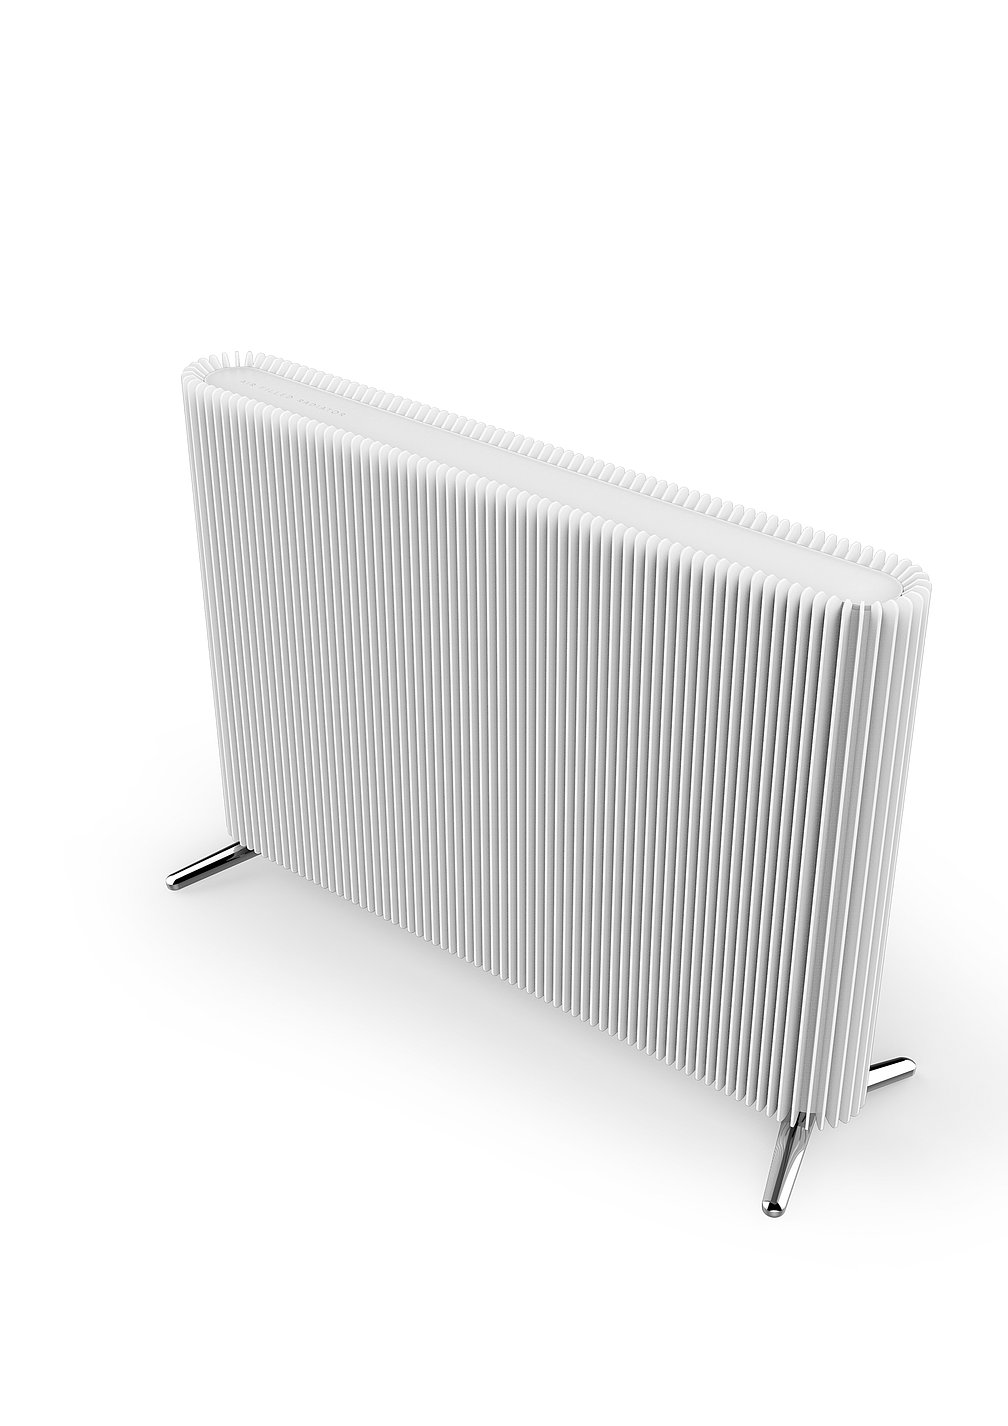 Air Filled Radiator | Red Dot Design Award